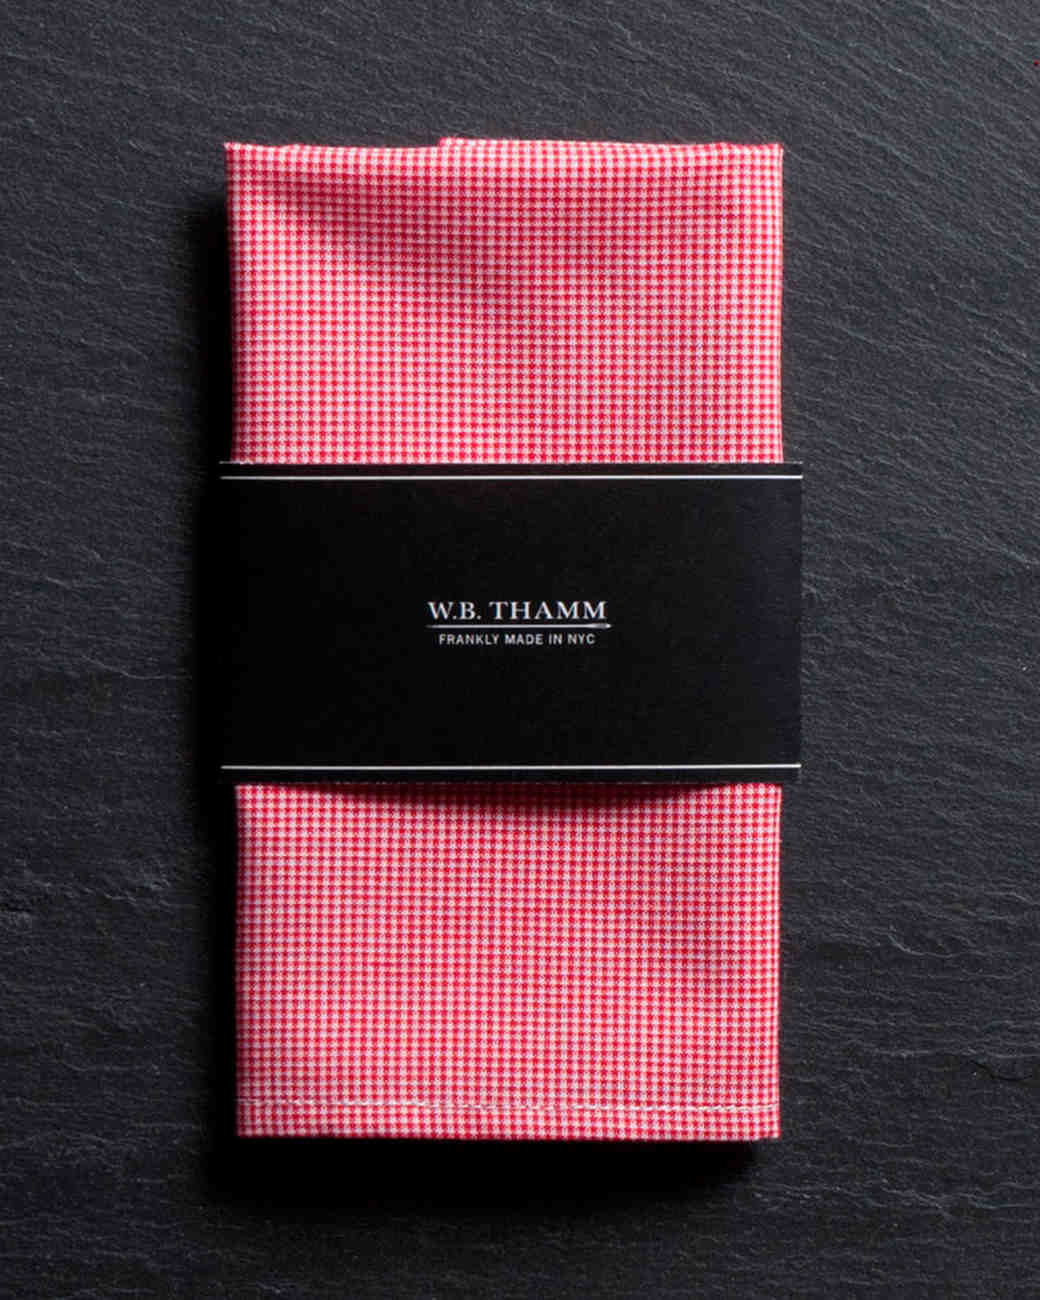 groomsmen-gift-ideas-w-b-thamm-pocket-square-0614.jpg